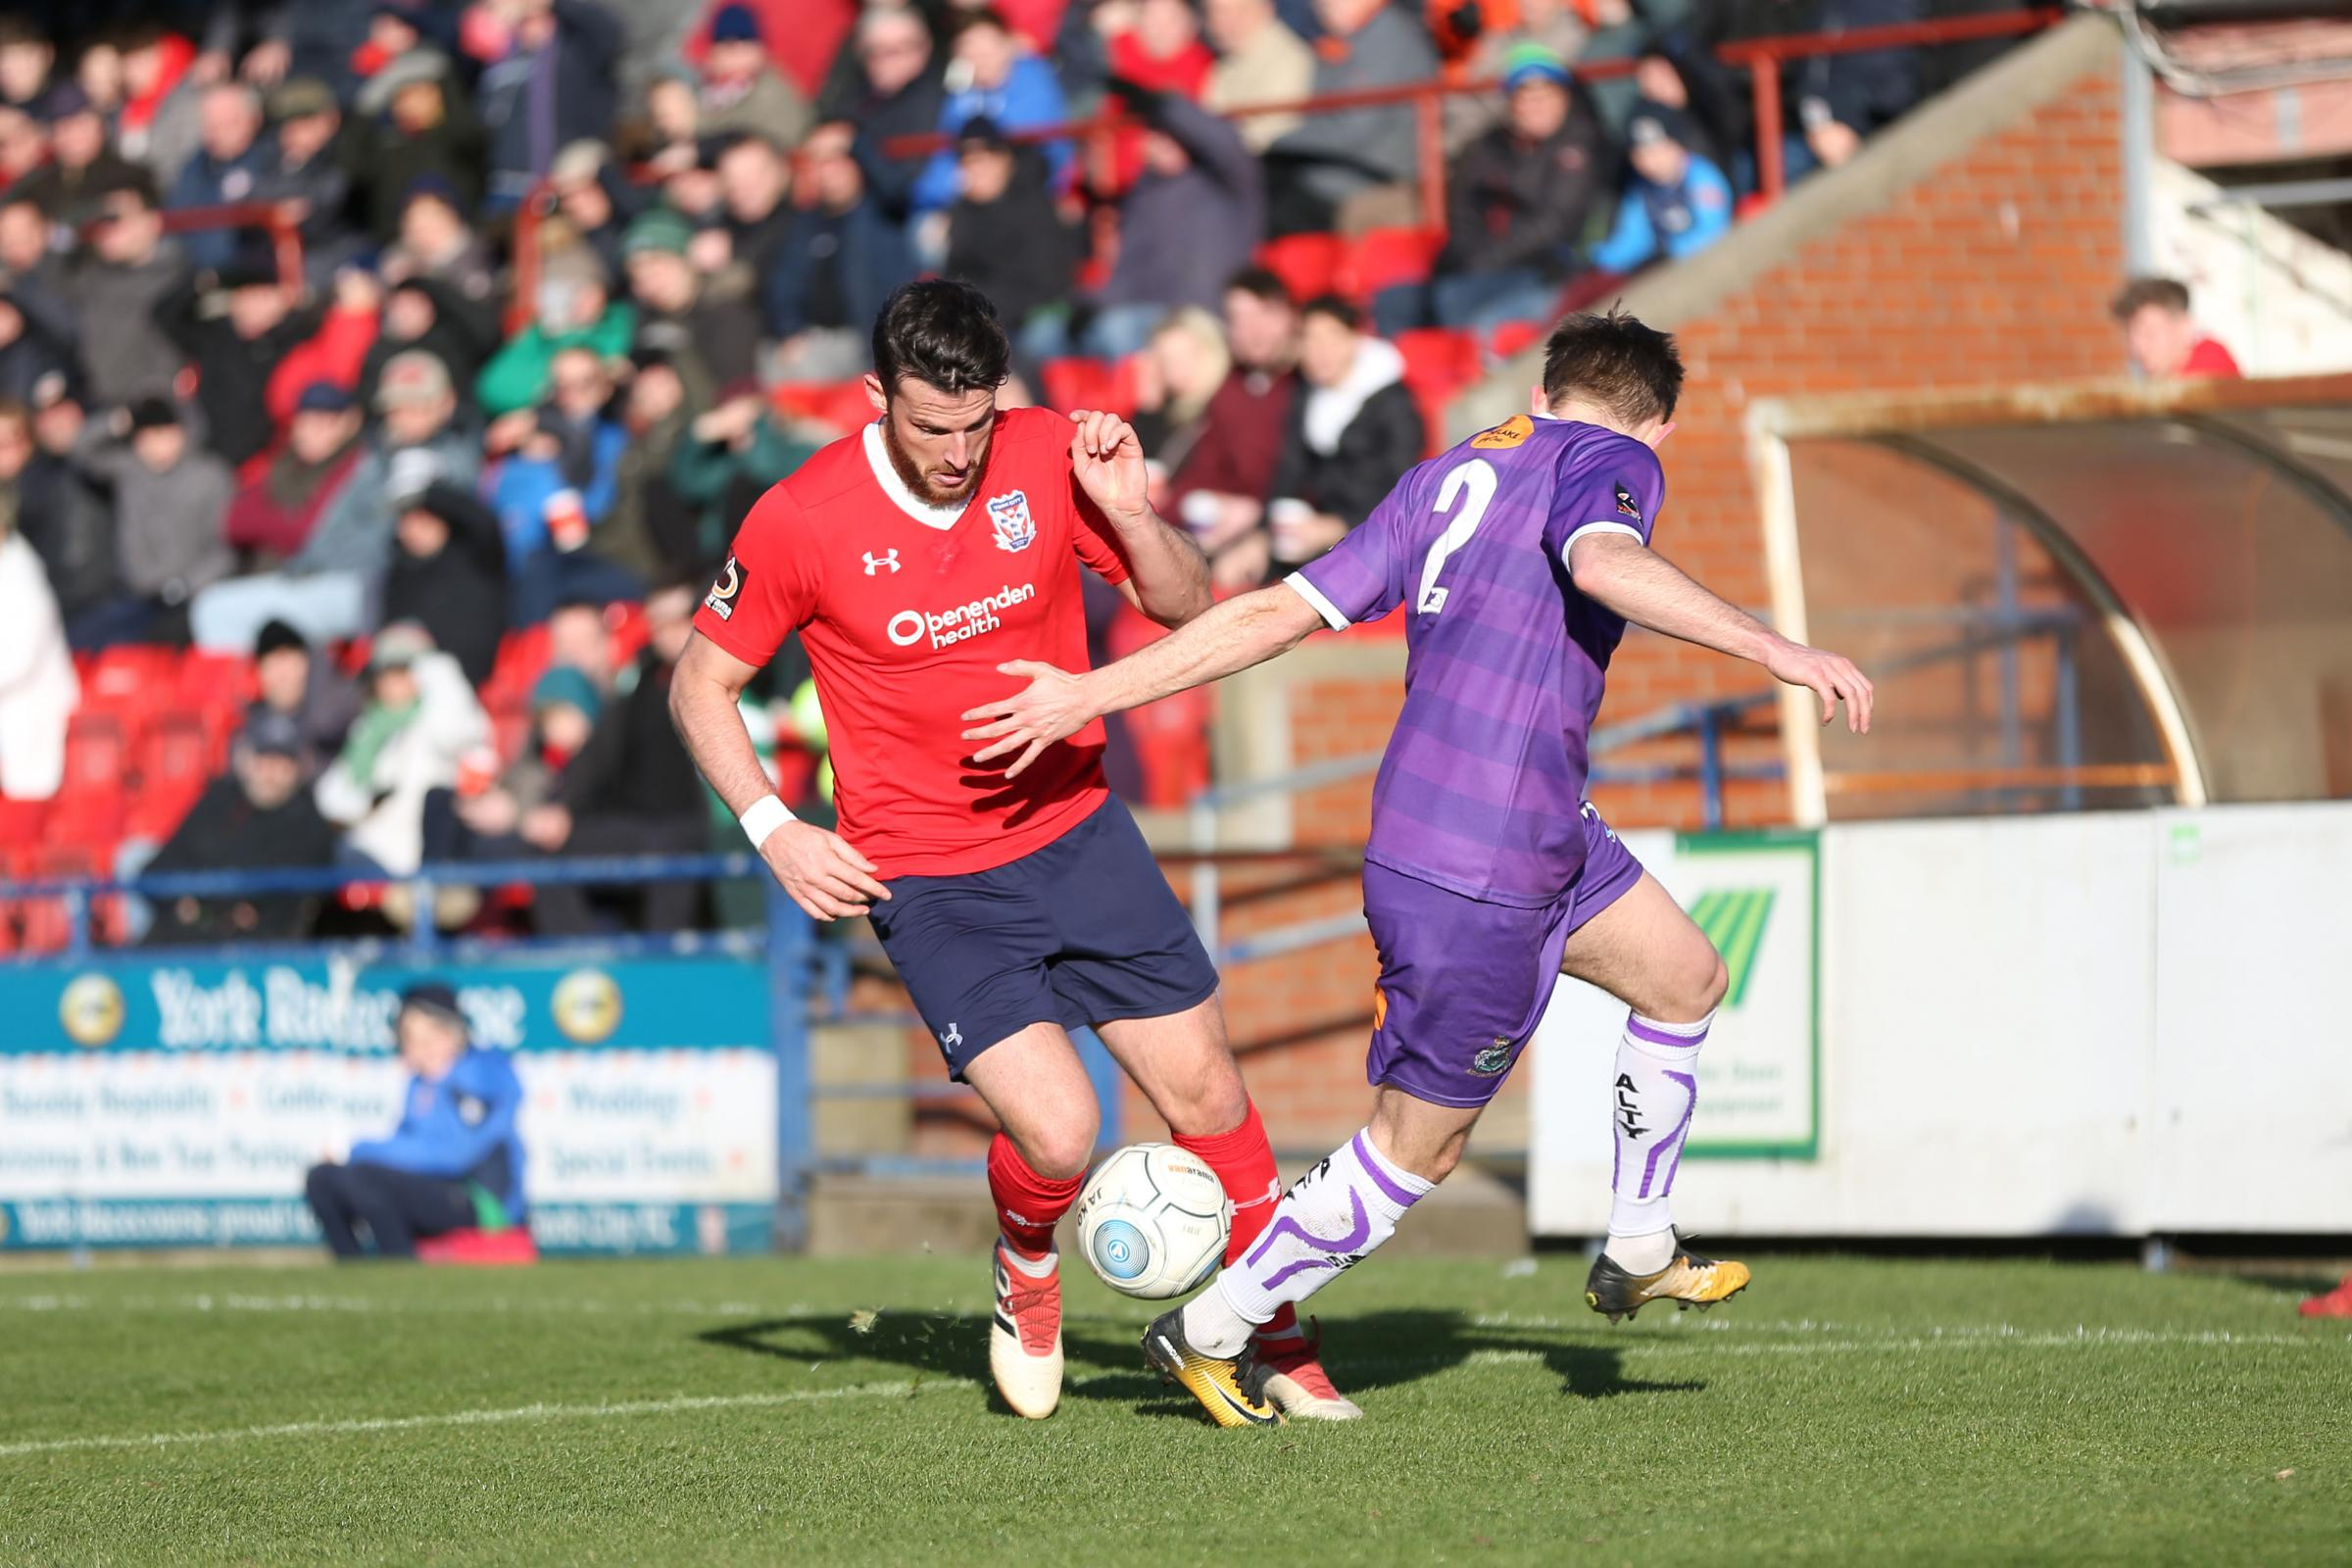 NEW LEASE OF LIFE: York City utility man Sean Newton has been virtually fault free since his switch to centre back following a difficult first six months of the season. Pictures: Gordon Clayton